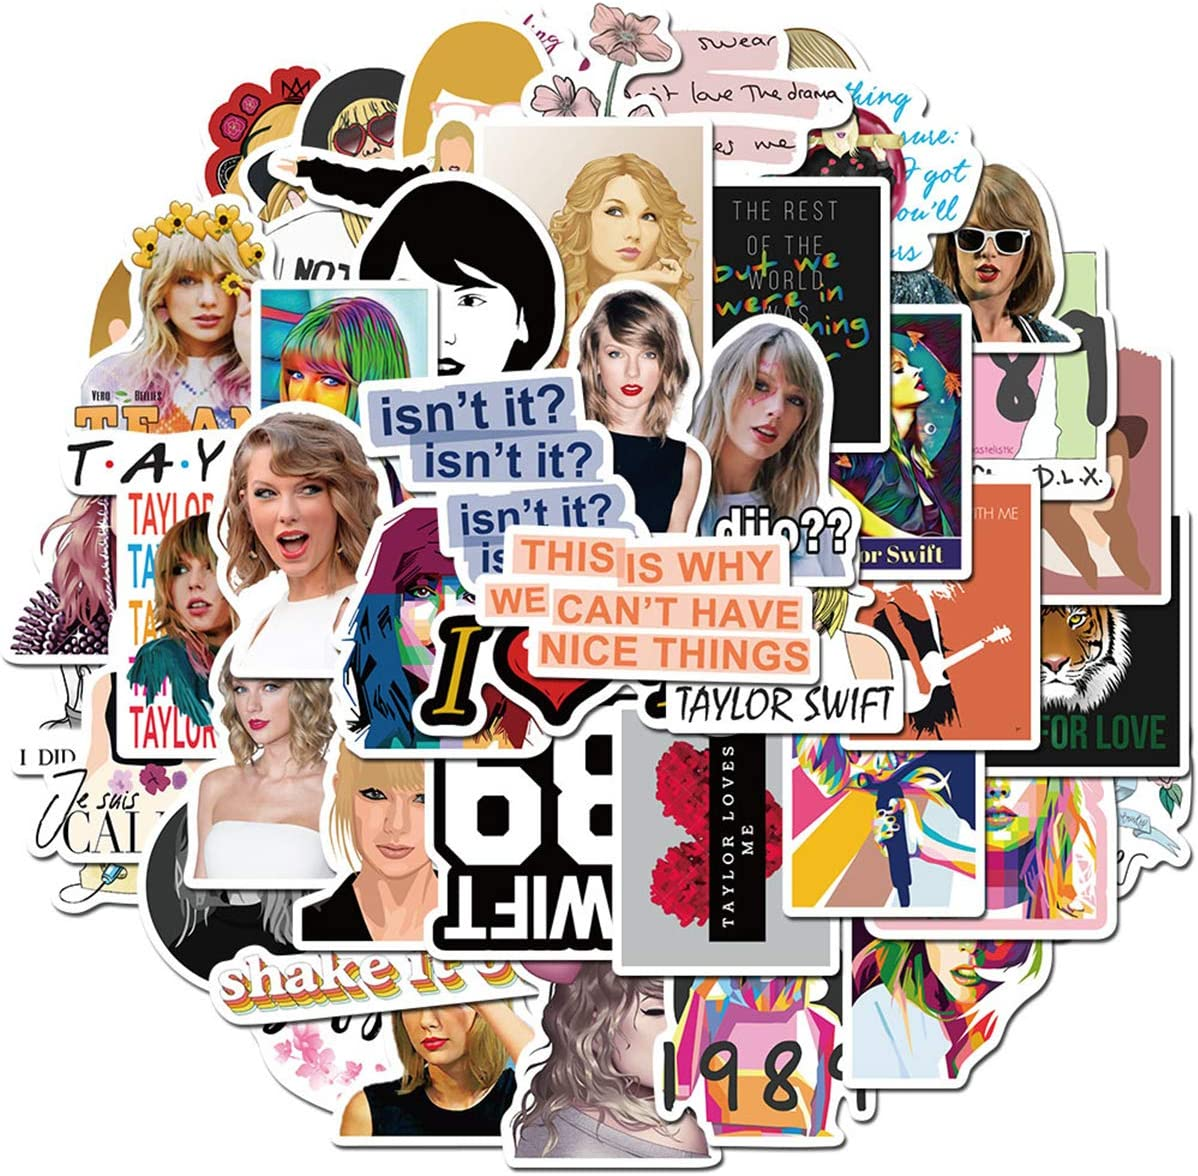 Water Bottle Cute Vine Buzzword Stickers (67pcs) Game Encouraging Wise Words Stickers Laptop Water Bottle Luggage Snowboard Bicycle Skateboard Decal for Kids Teens (Taylor Swift)